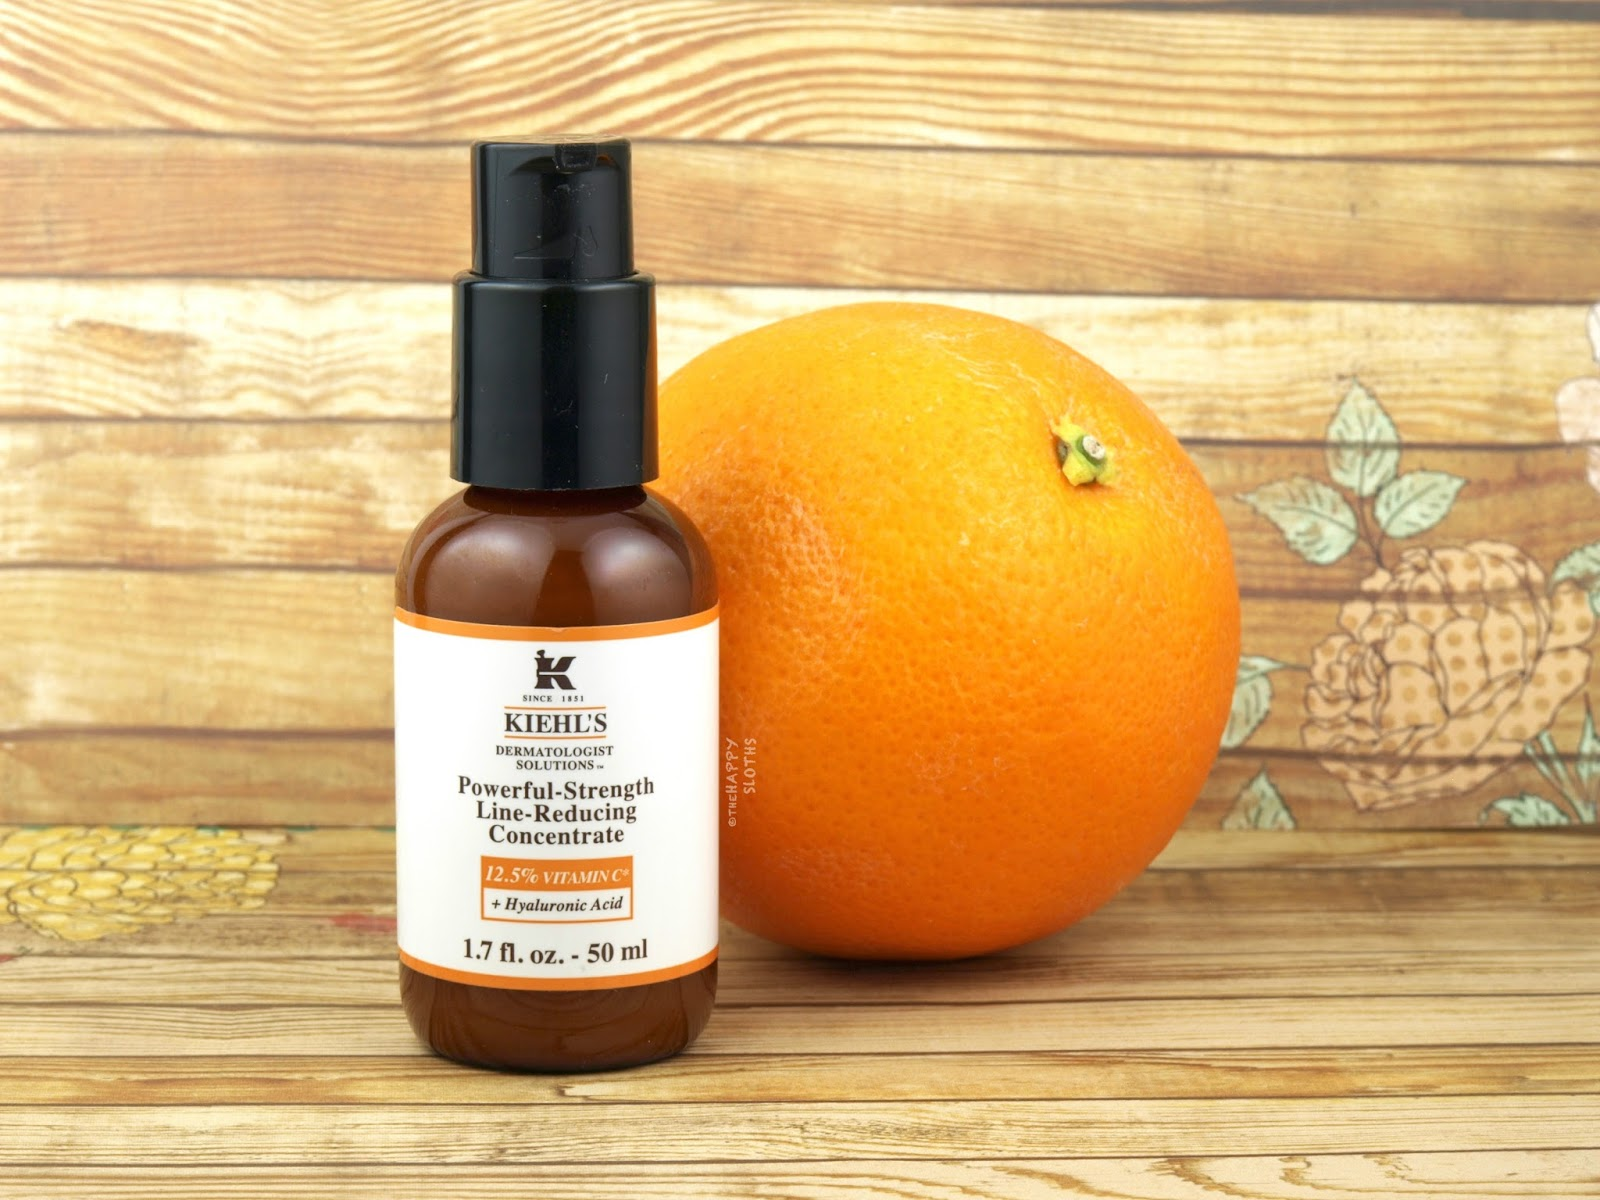 Kiehl's | Powerful-Strength Line-Reducing Concentrate Vitamin C Serum: Review